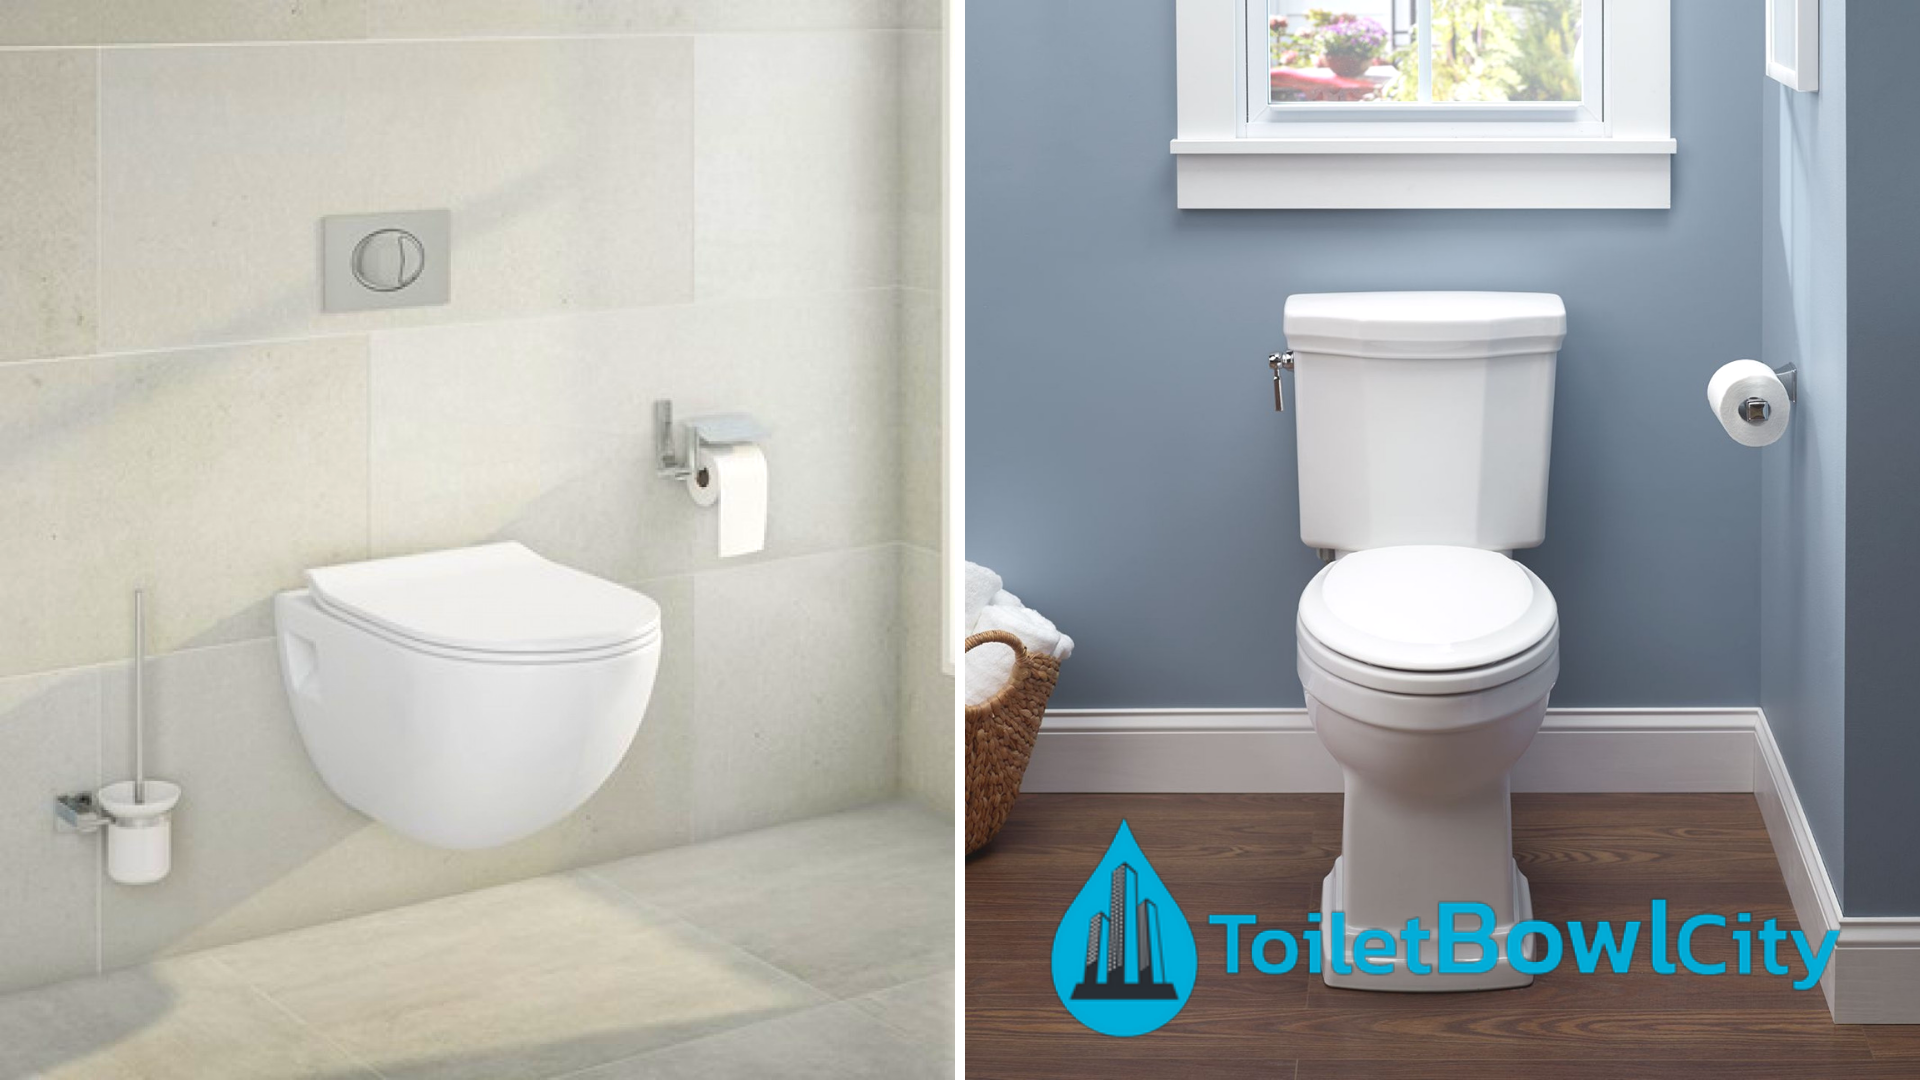 Difference Between A Wall Mounted Toilet And A Floor Mounted